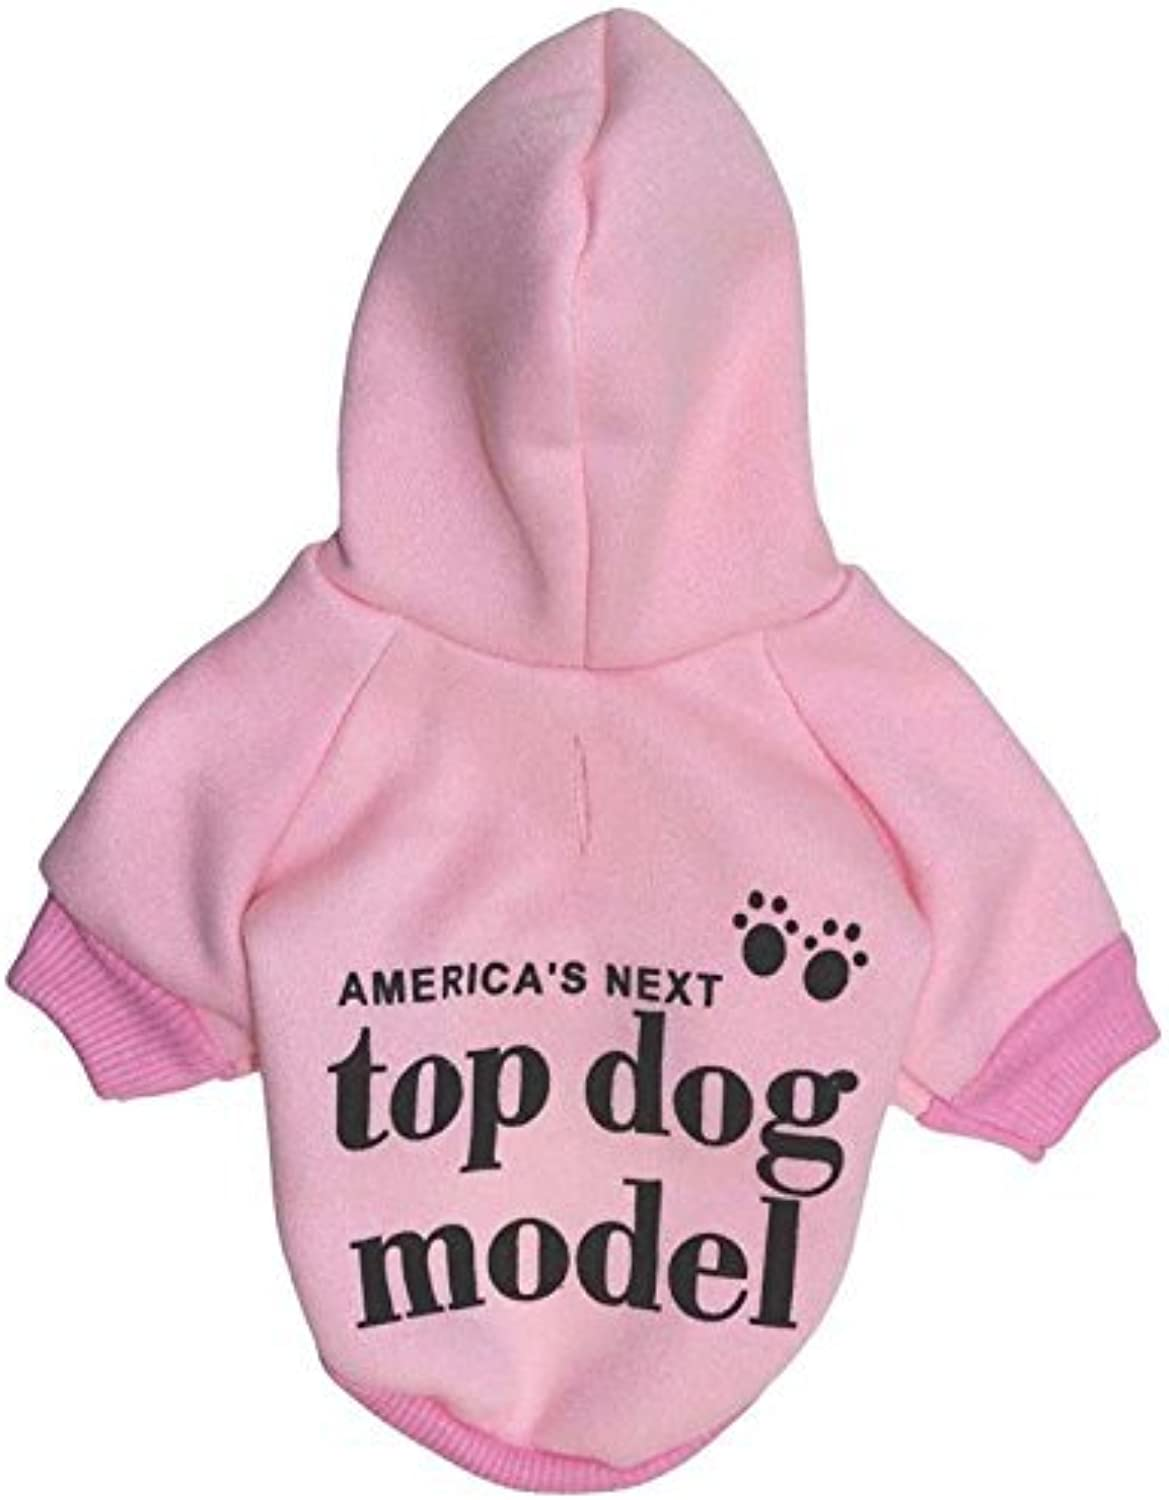 Doggy Costume Pet Supplies Misc Pet Clothes Dog Clothing Fleece Cloth with Cap Small Dog pet tShirt Autumn and Winter Models (color   Red, Size   L) Pet Dog Clothes (color   Pink, Size   S)